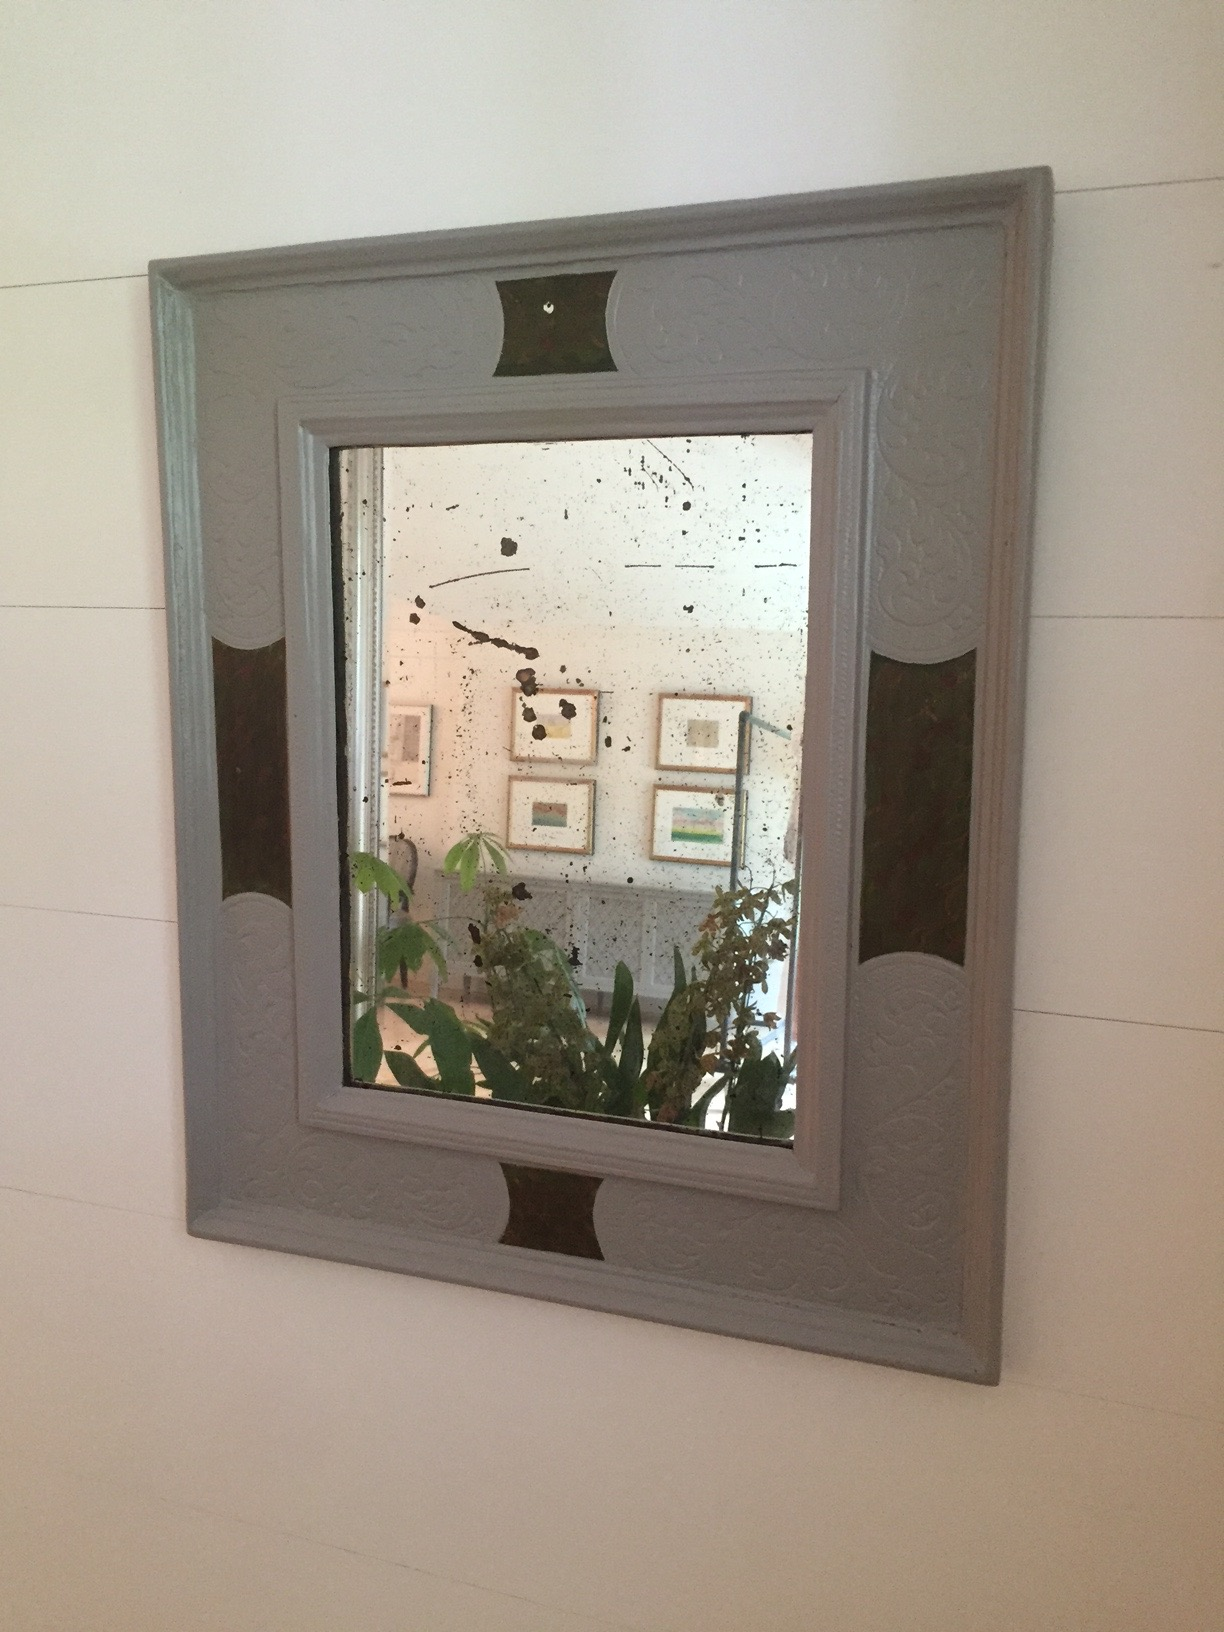 In the living room I also painted a small entry mirror  Worsted,  another beautiful grey in the rich, deep family of Farrow & Ball grey's. It has less a steely industrial quality and seems perfect to give a smaller piece weight.